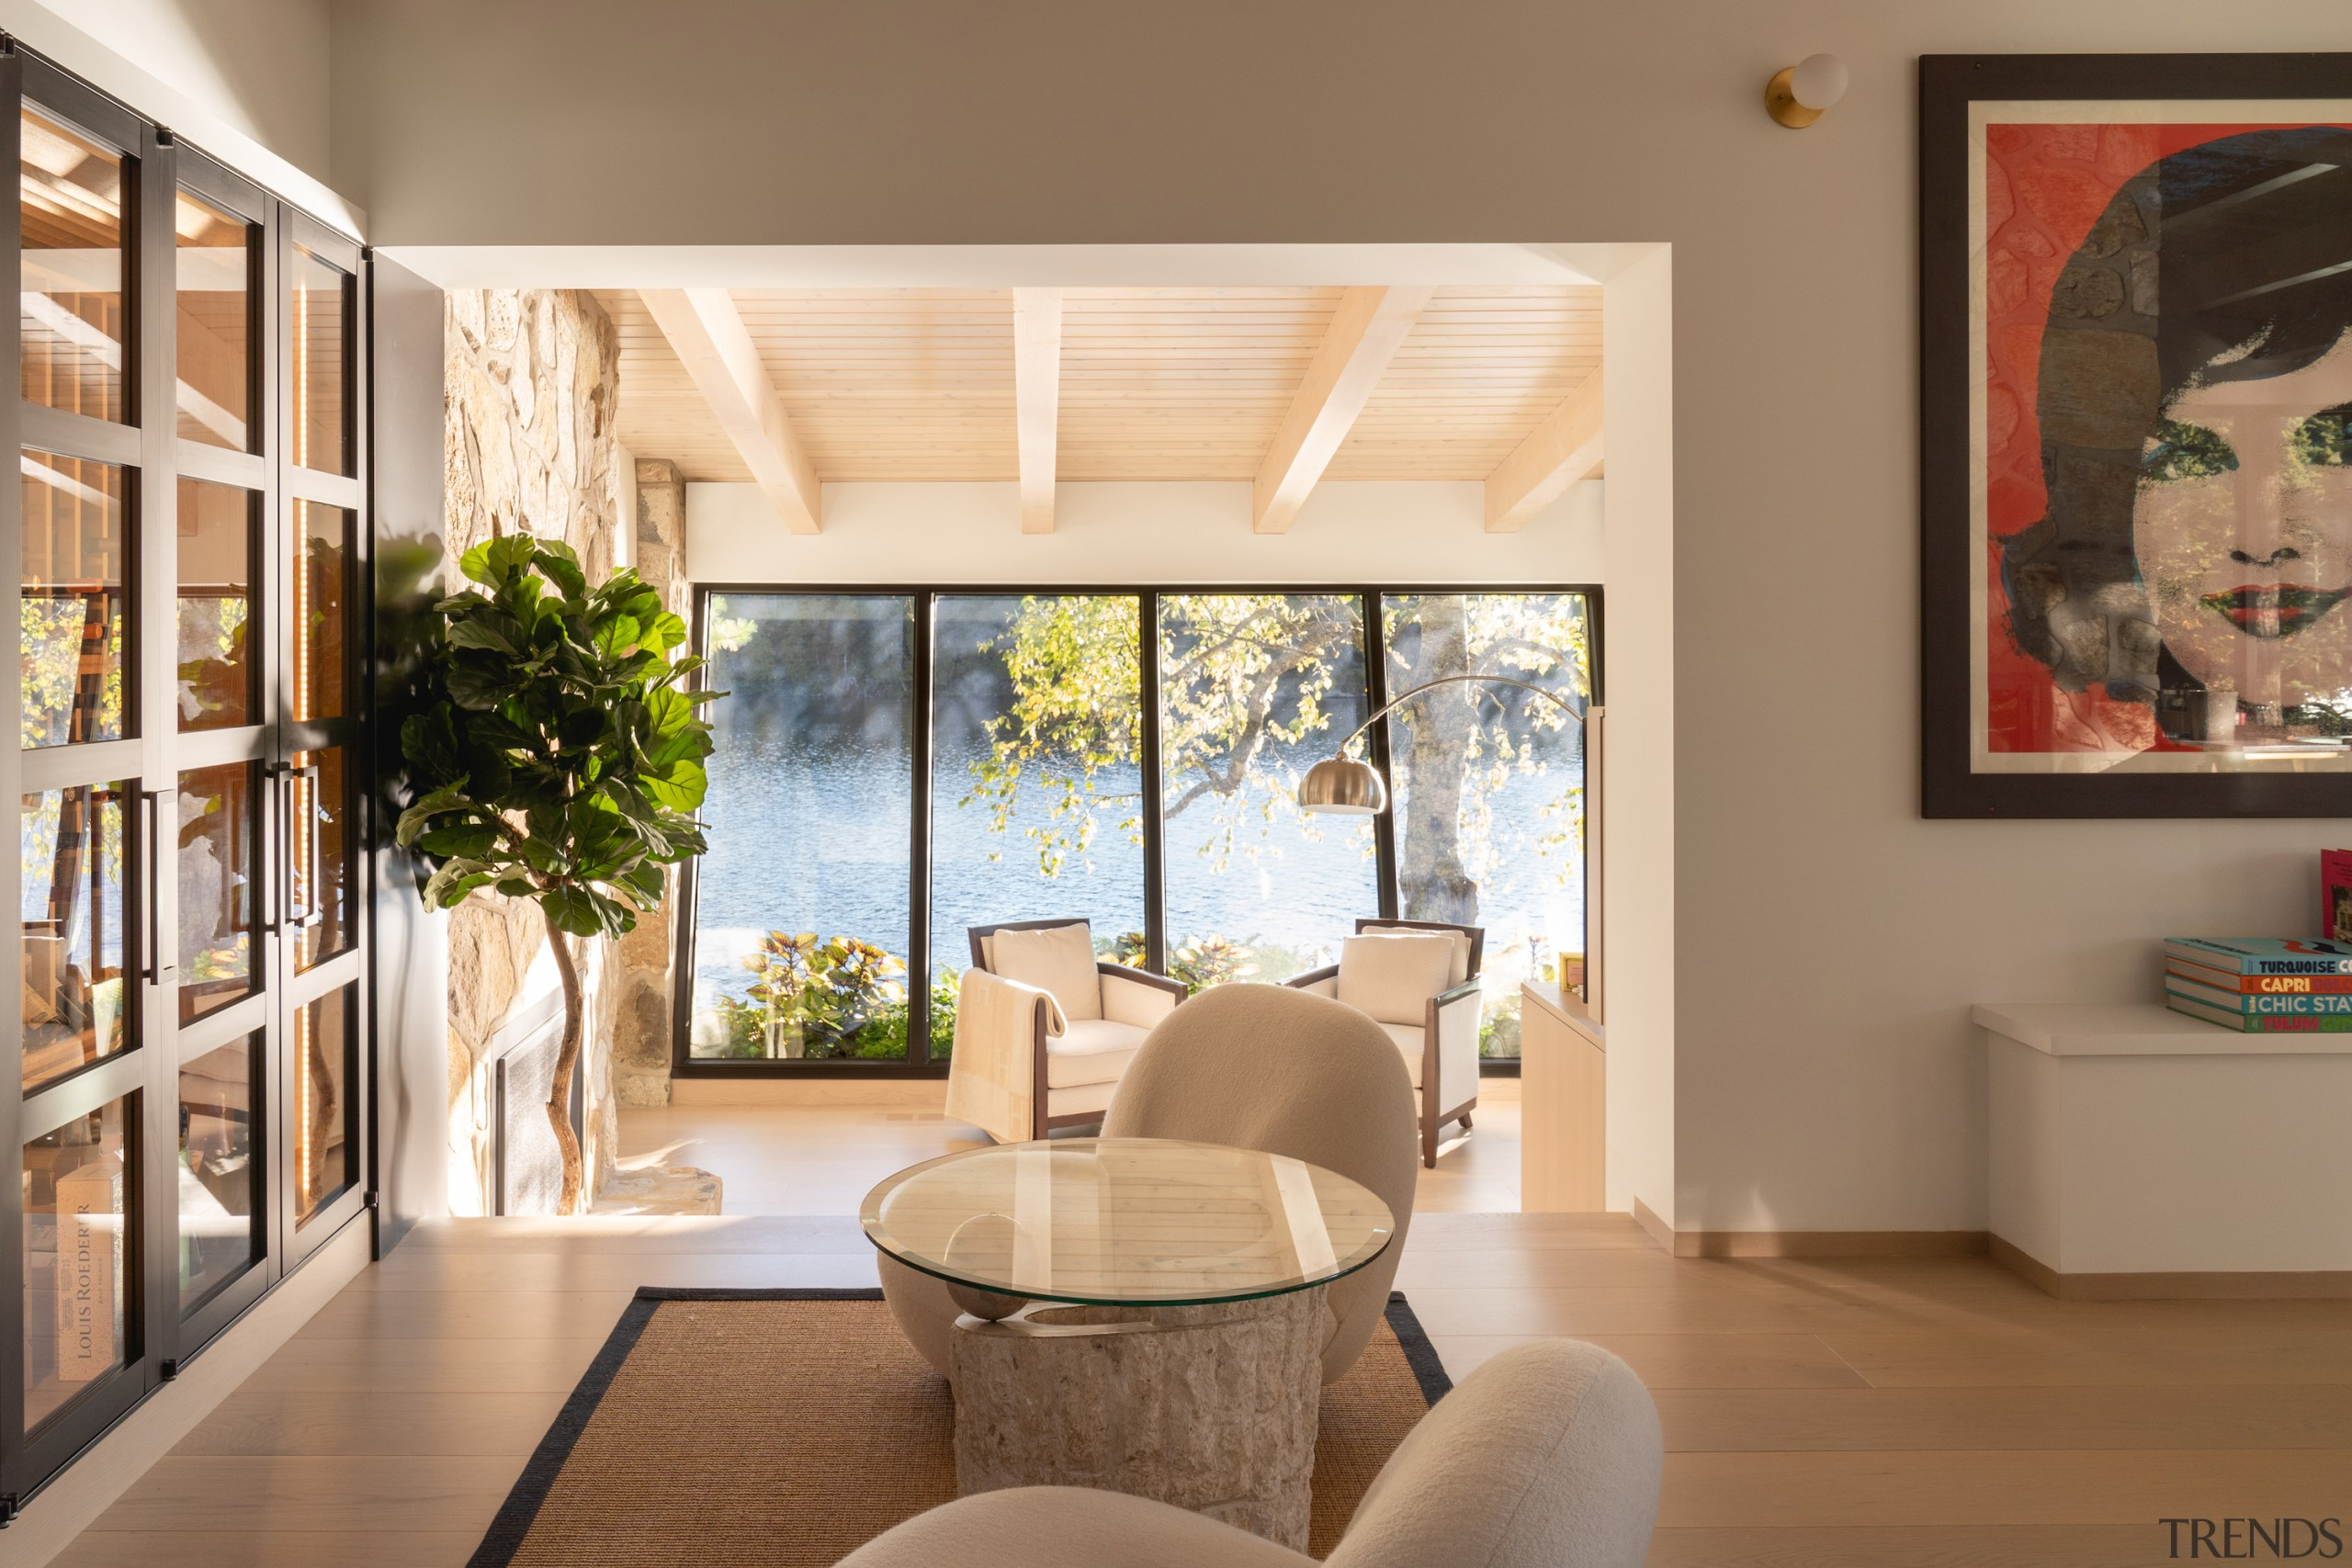 Given the open-plan layout, the pristine lake is